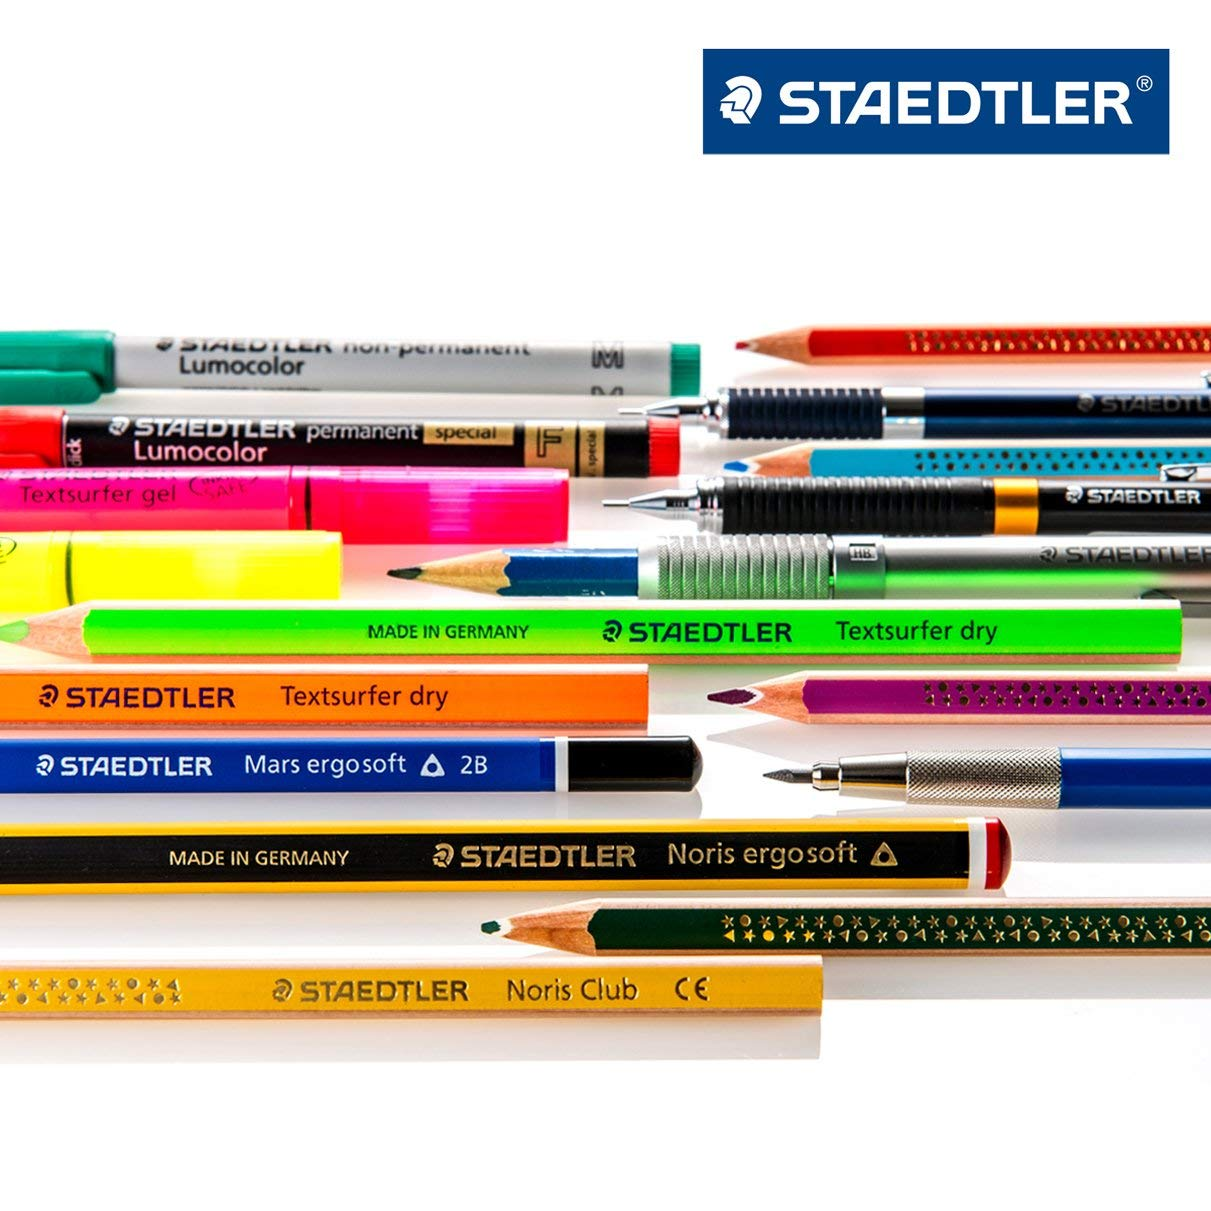 Staedtler Micro Mars Carbon Mechanical Pencil Leads, 0.5 mm, H, 60 mm x 12 (250 05 H)